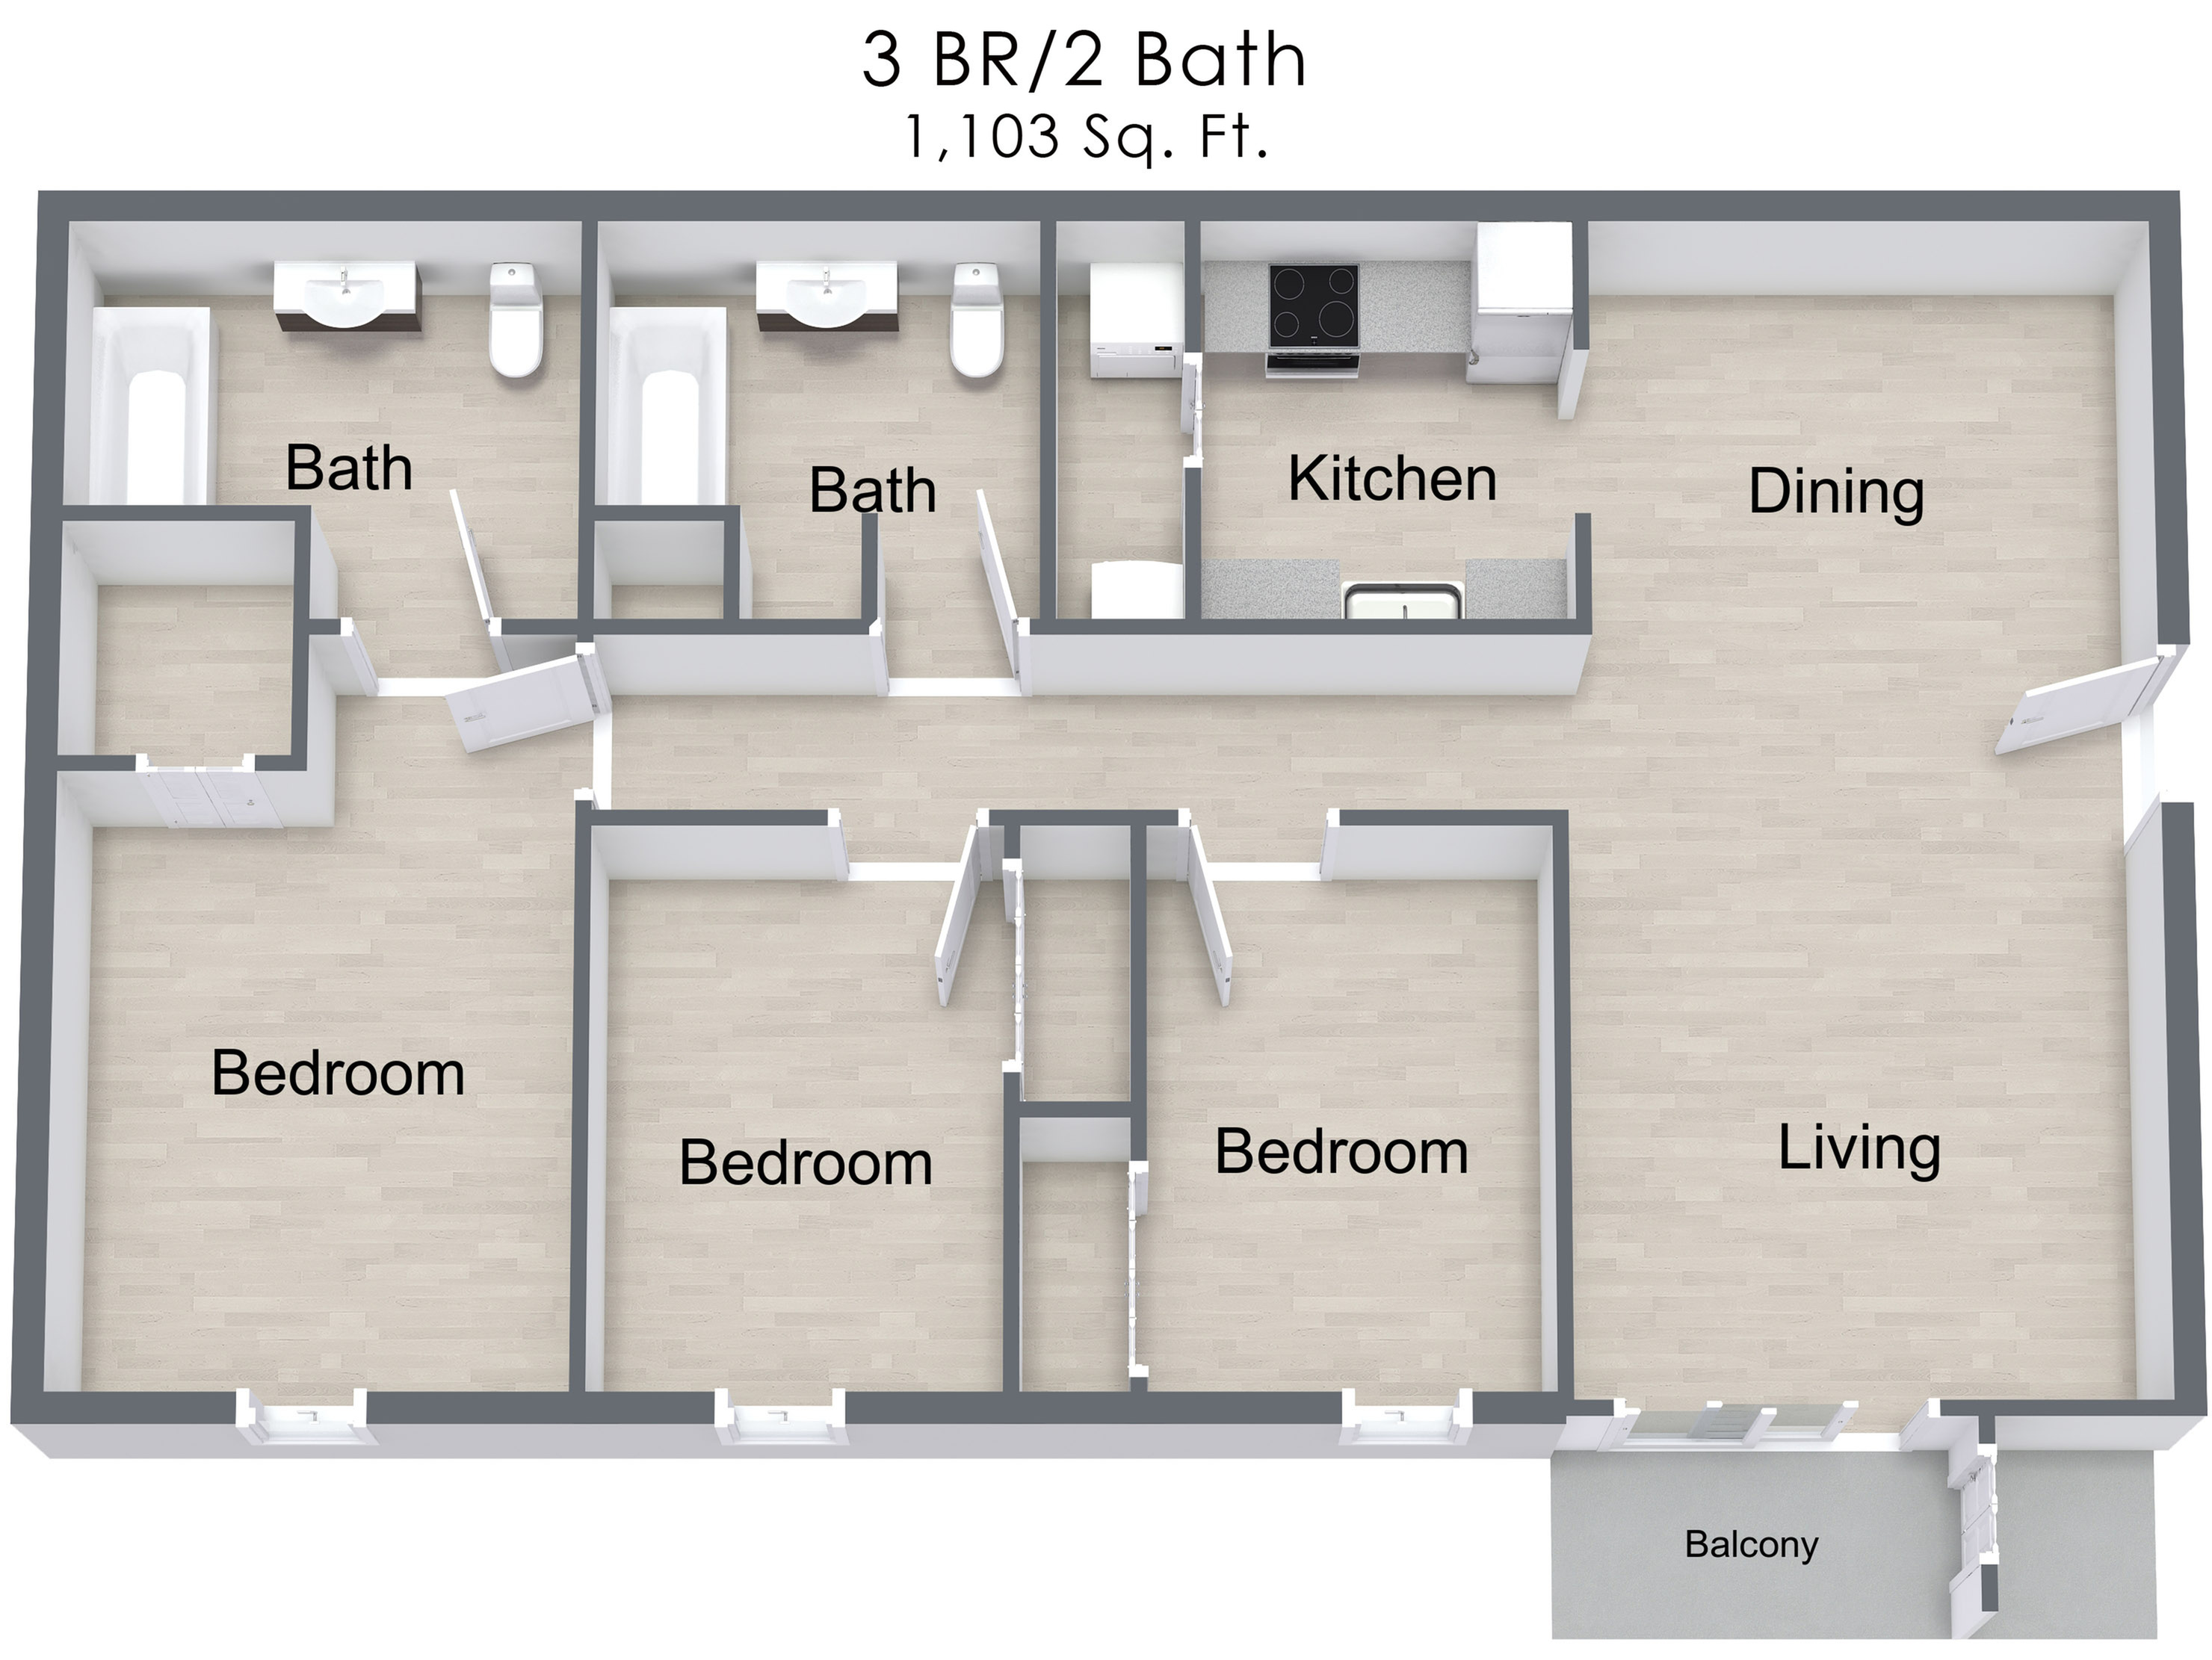 For The 3 Bedroom Apartment Floor Plan.